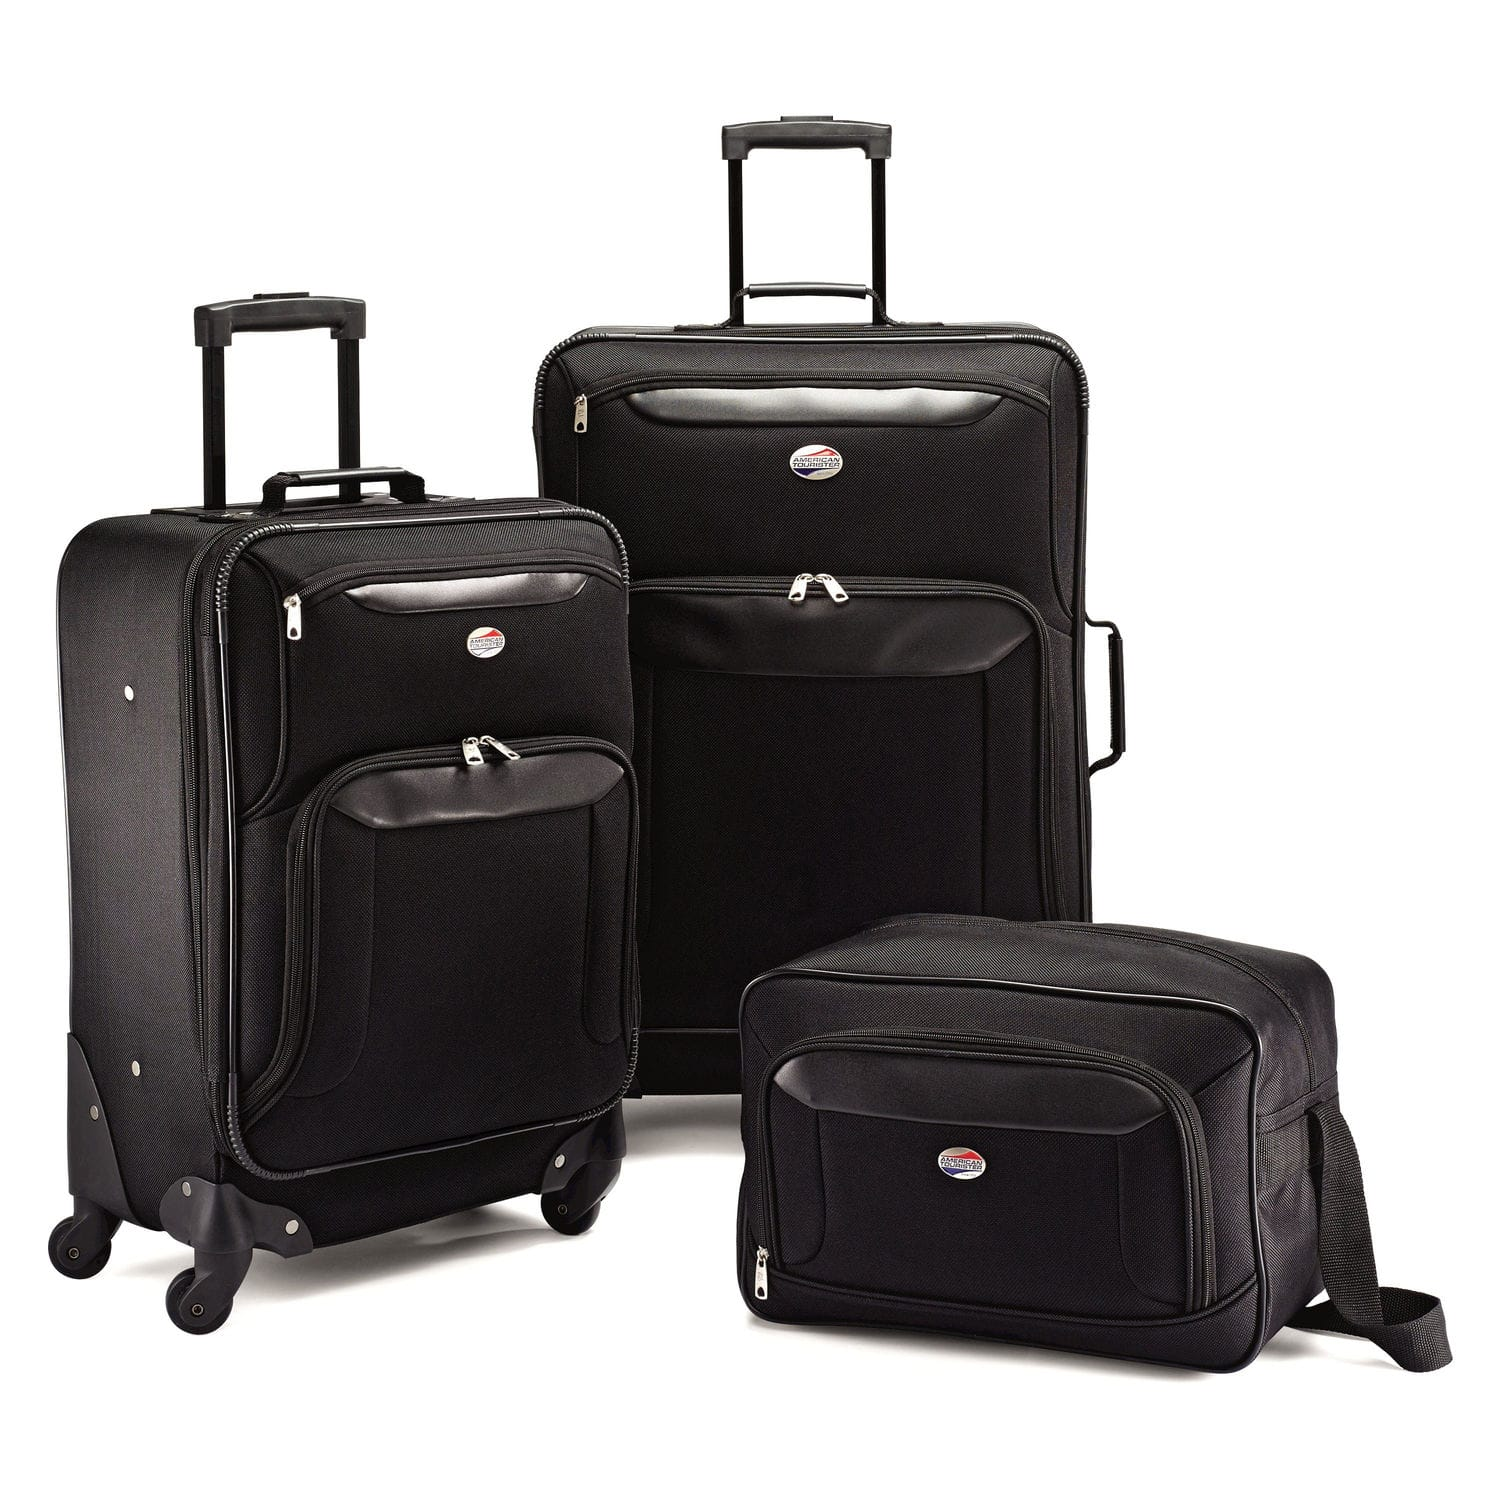 American Tourister Brookfield Luggage Set (Navy Blue or Black) 4-Piece $75 or 3-Piece $60 + Free Shipping